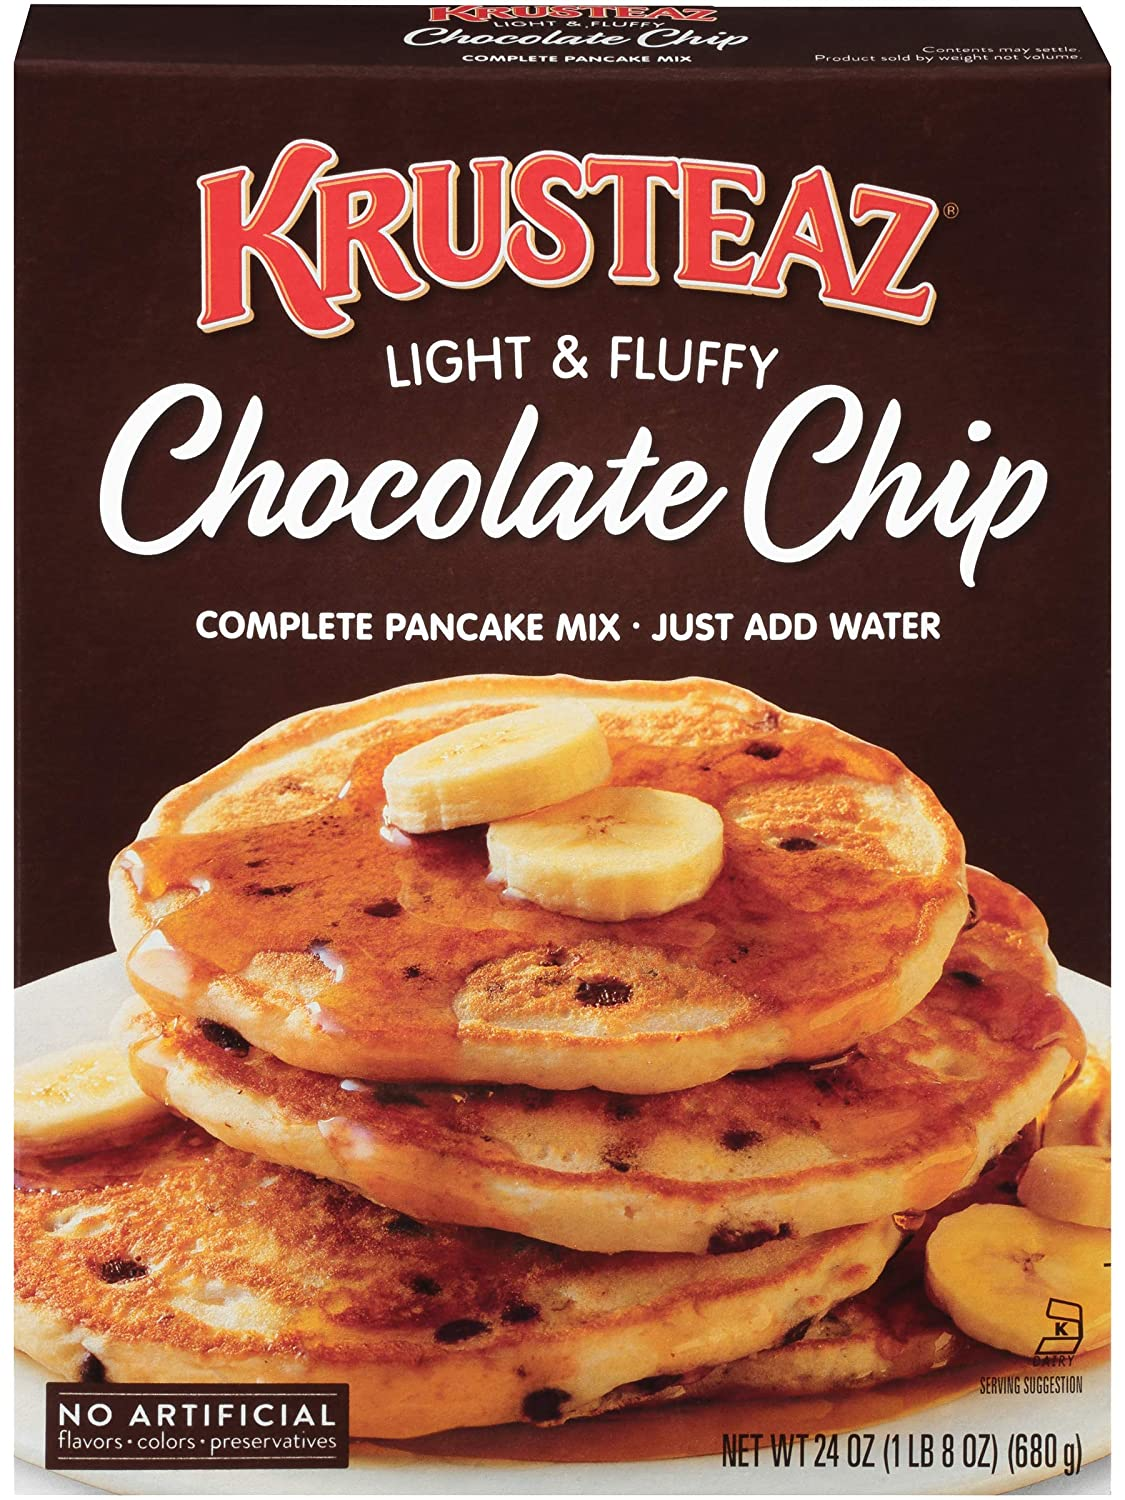 Amazon Com Krusteaz Light Fluffy Complete Pancake Mix Chocolate Chip No Artificial Flavors Colors Or Preservatives 24 Oz Pack Of 2 Grocery Gourmet Food